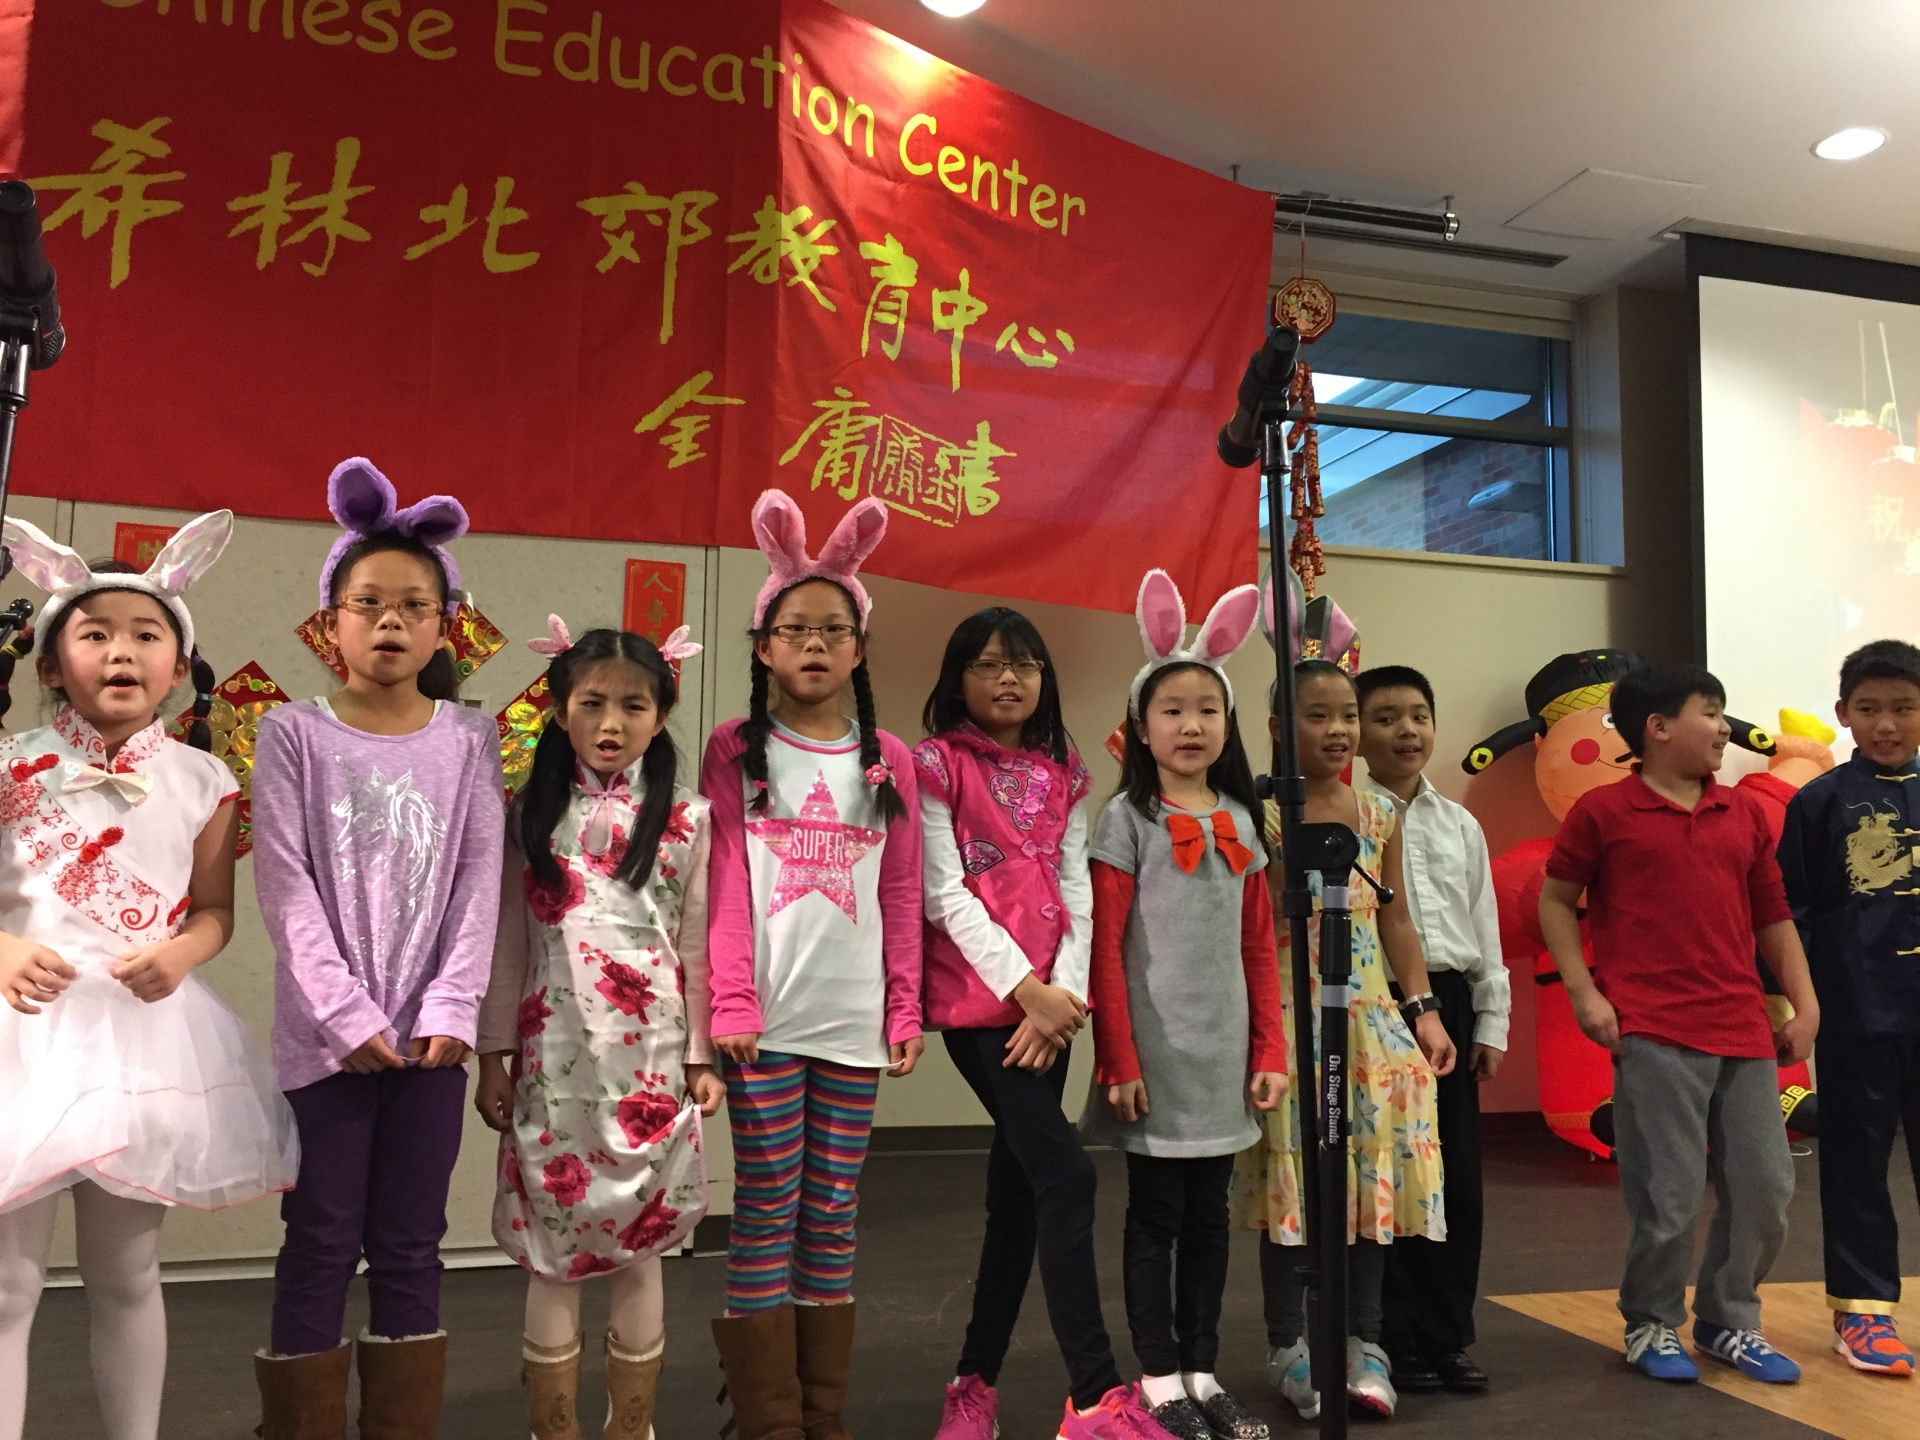 Chinese New Year celebration at the Xilin Chinese School